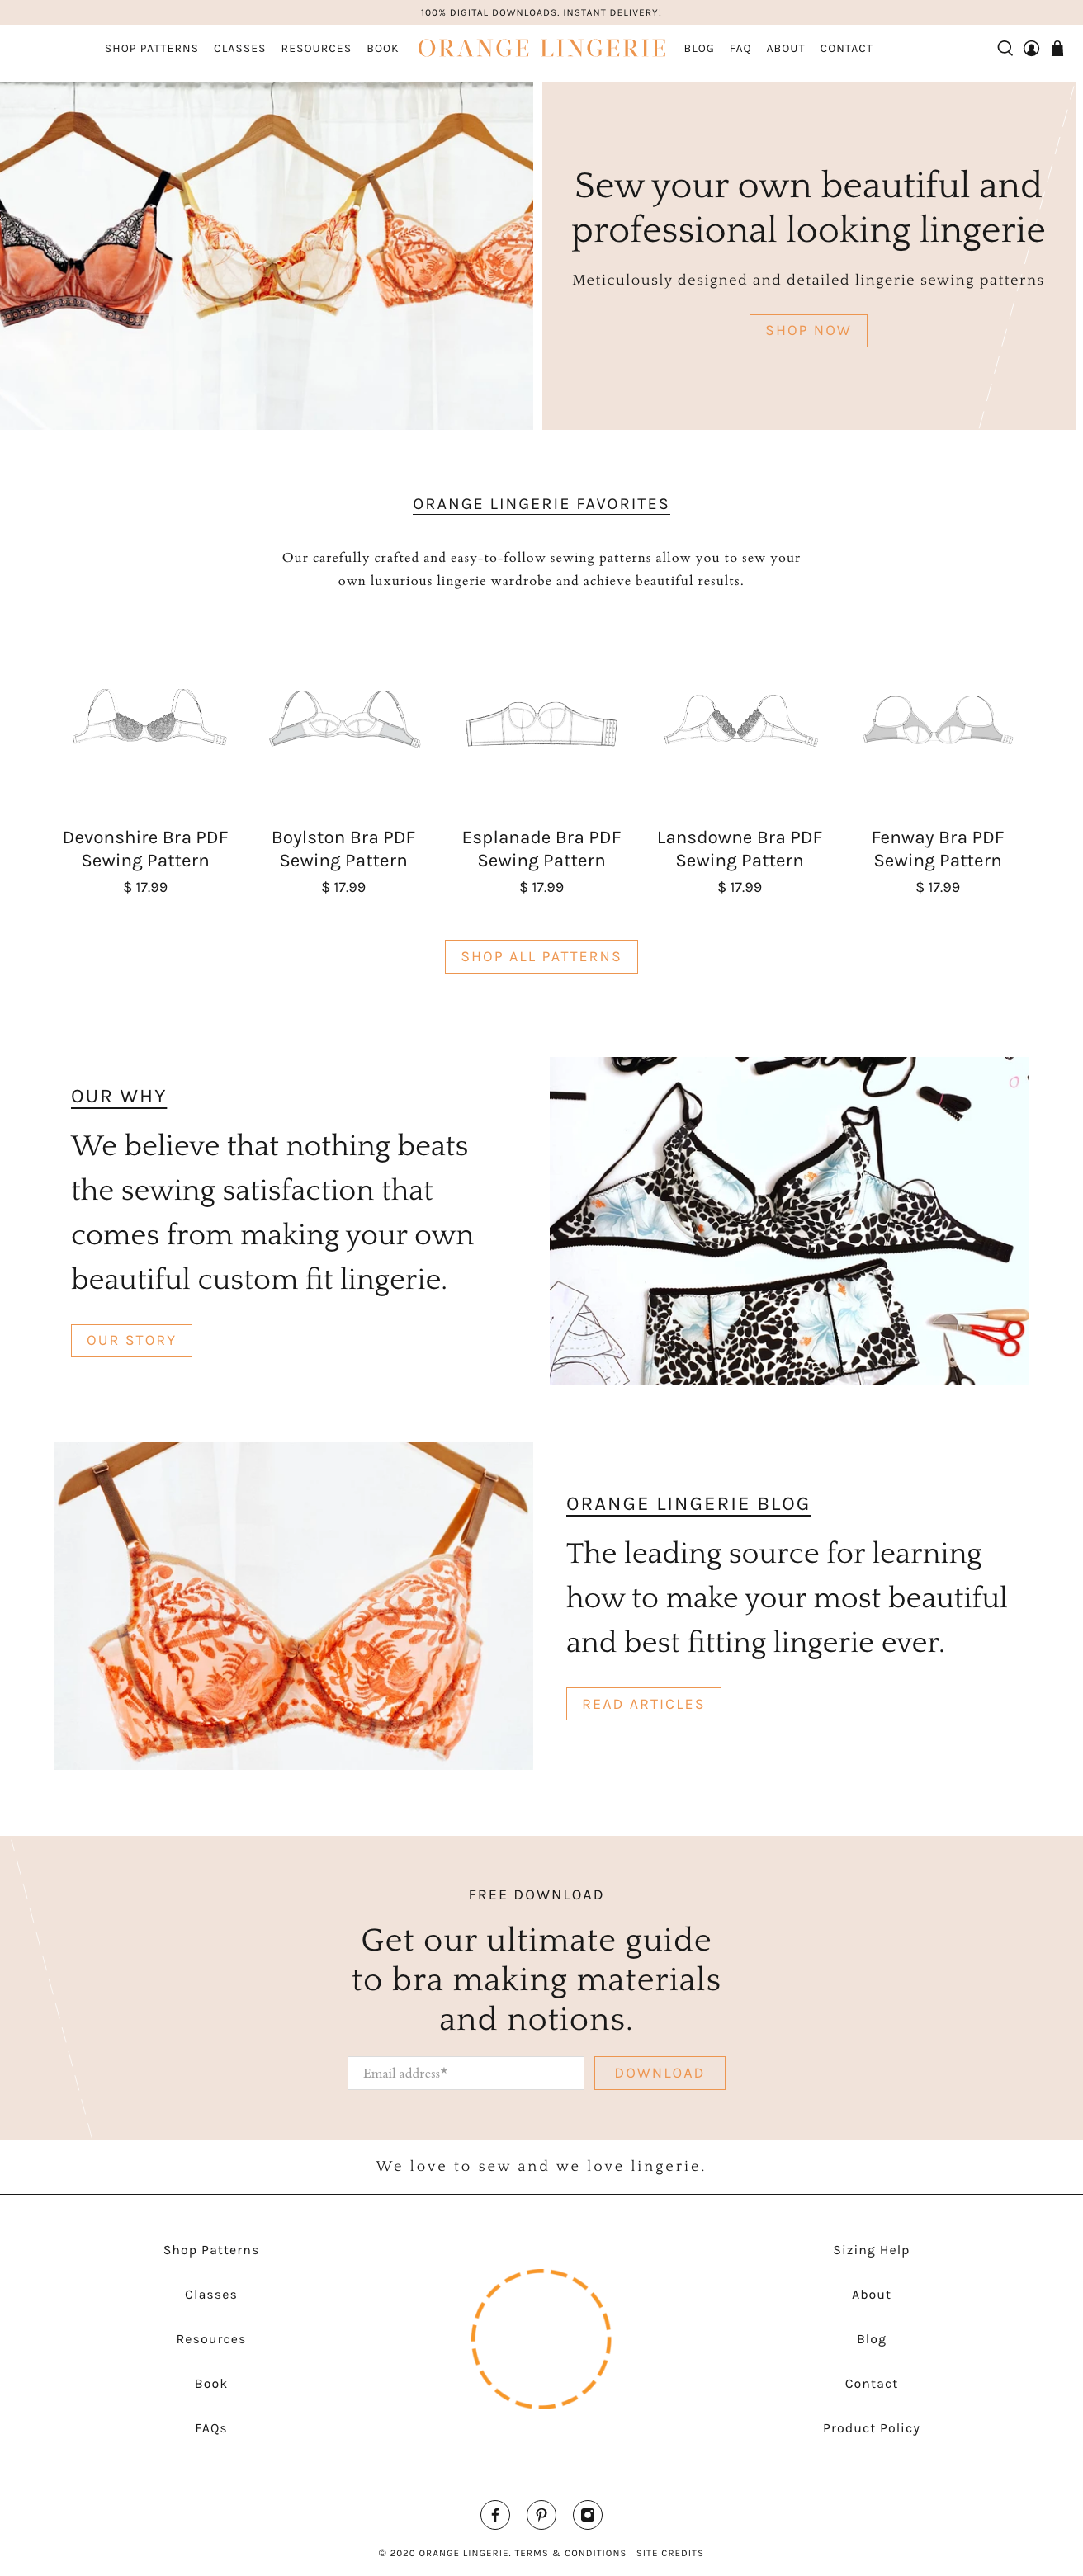 orange lingerie's new shopify homepage design